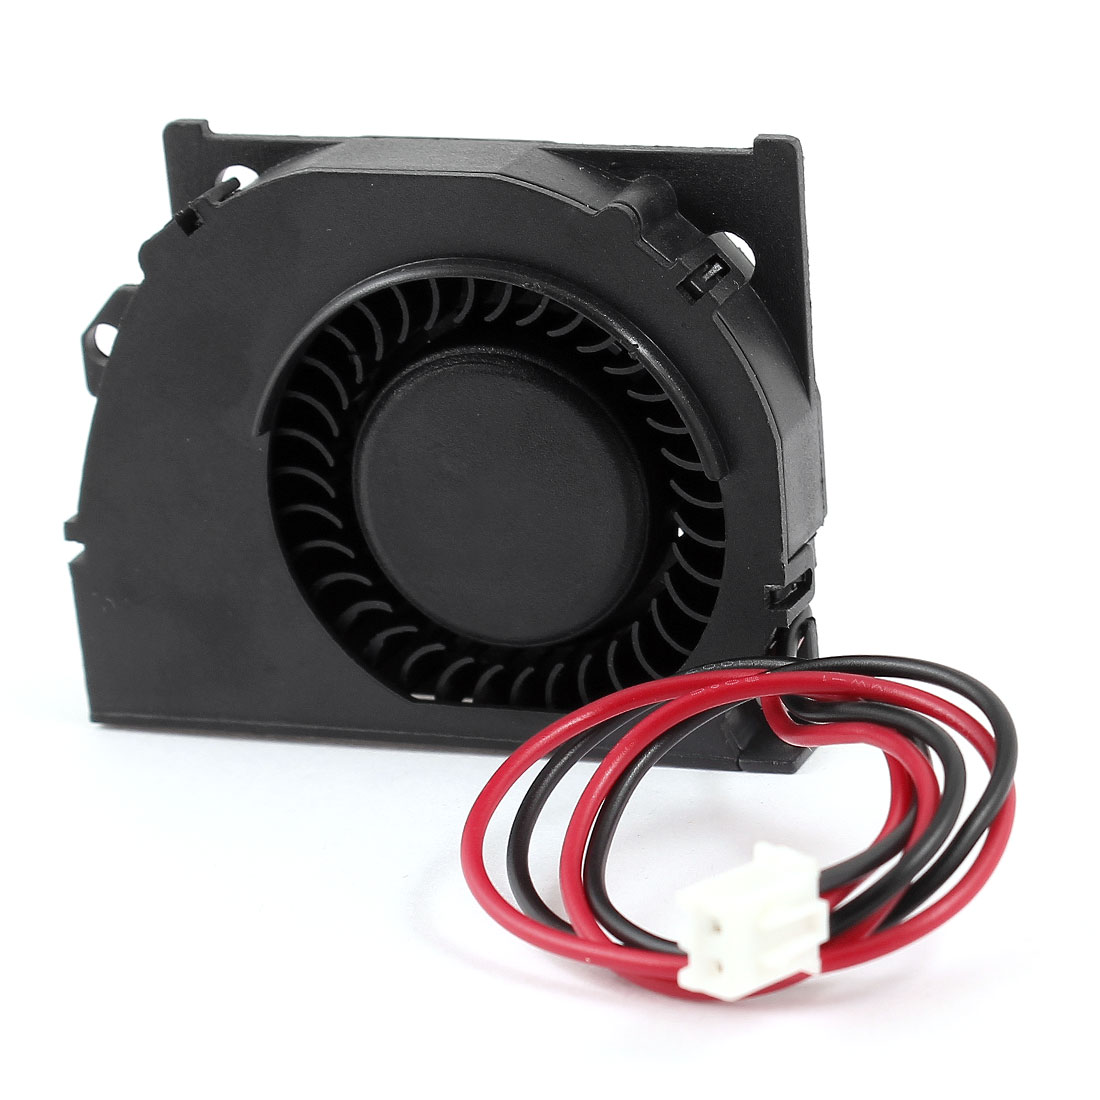 DC 12V 0.1A 4010S Turbine Brushless DC Cooling Blower Fan 50mm x 40mm x 10mm Black